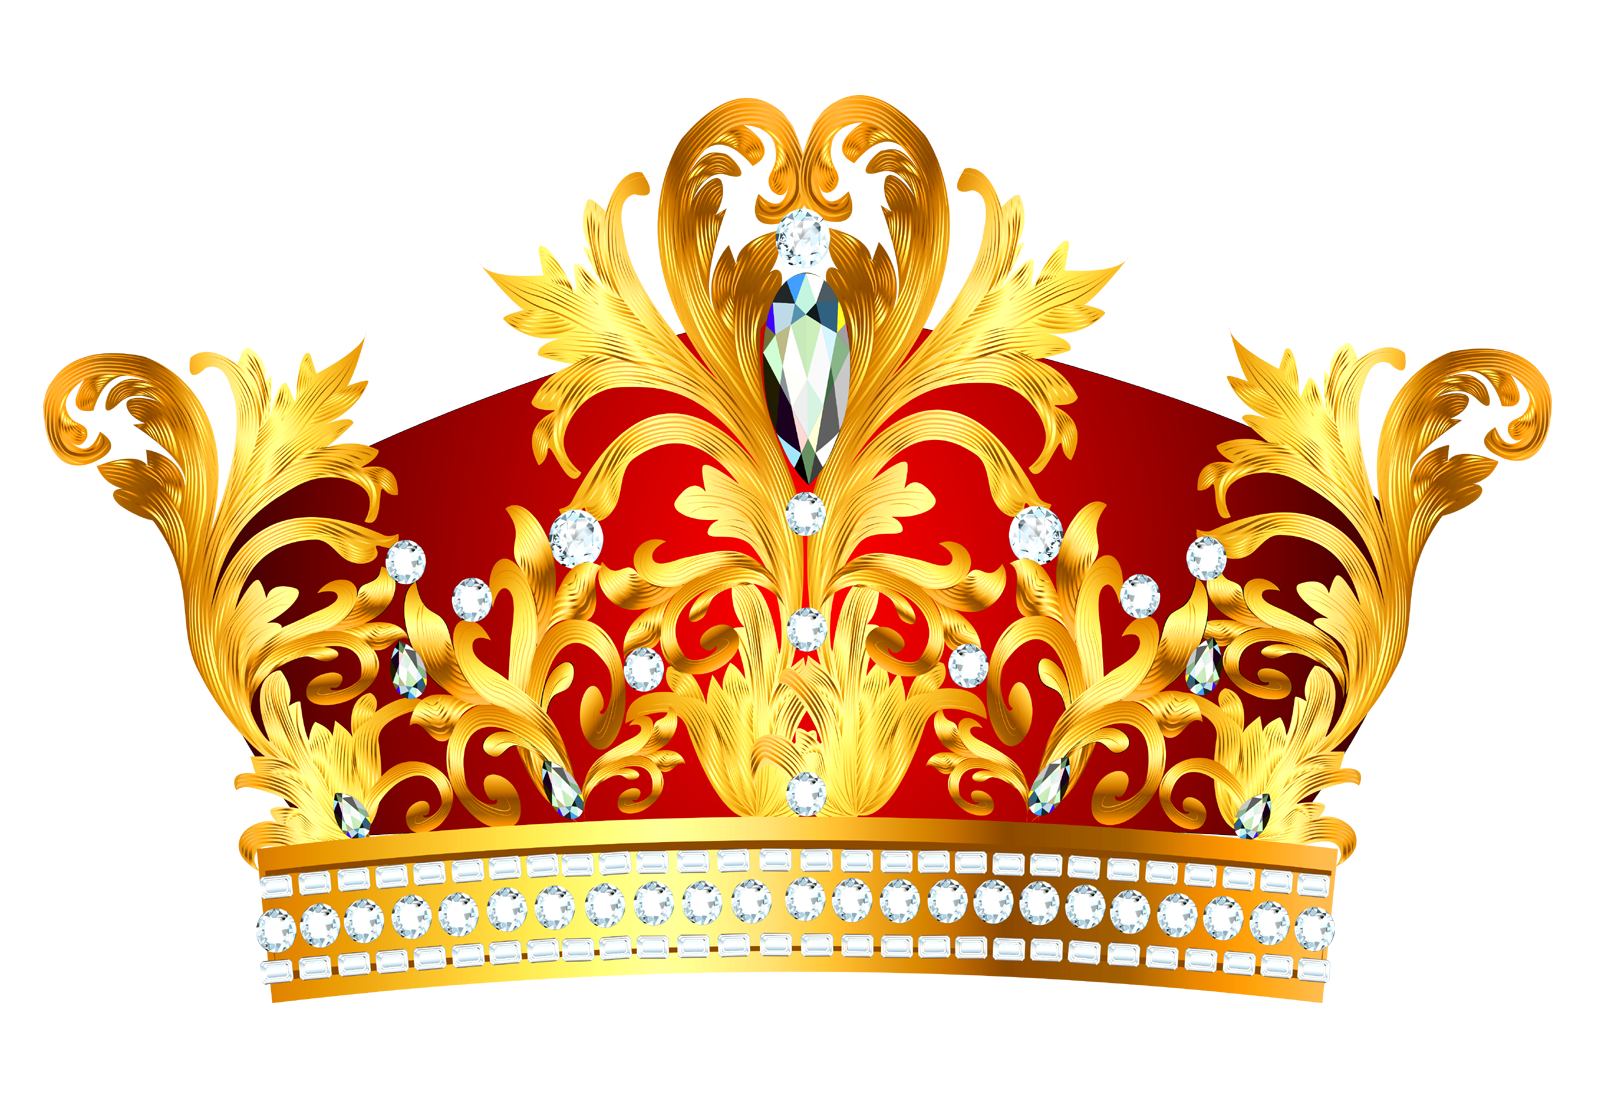 Transparent crowns royal